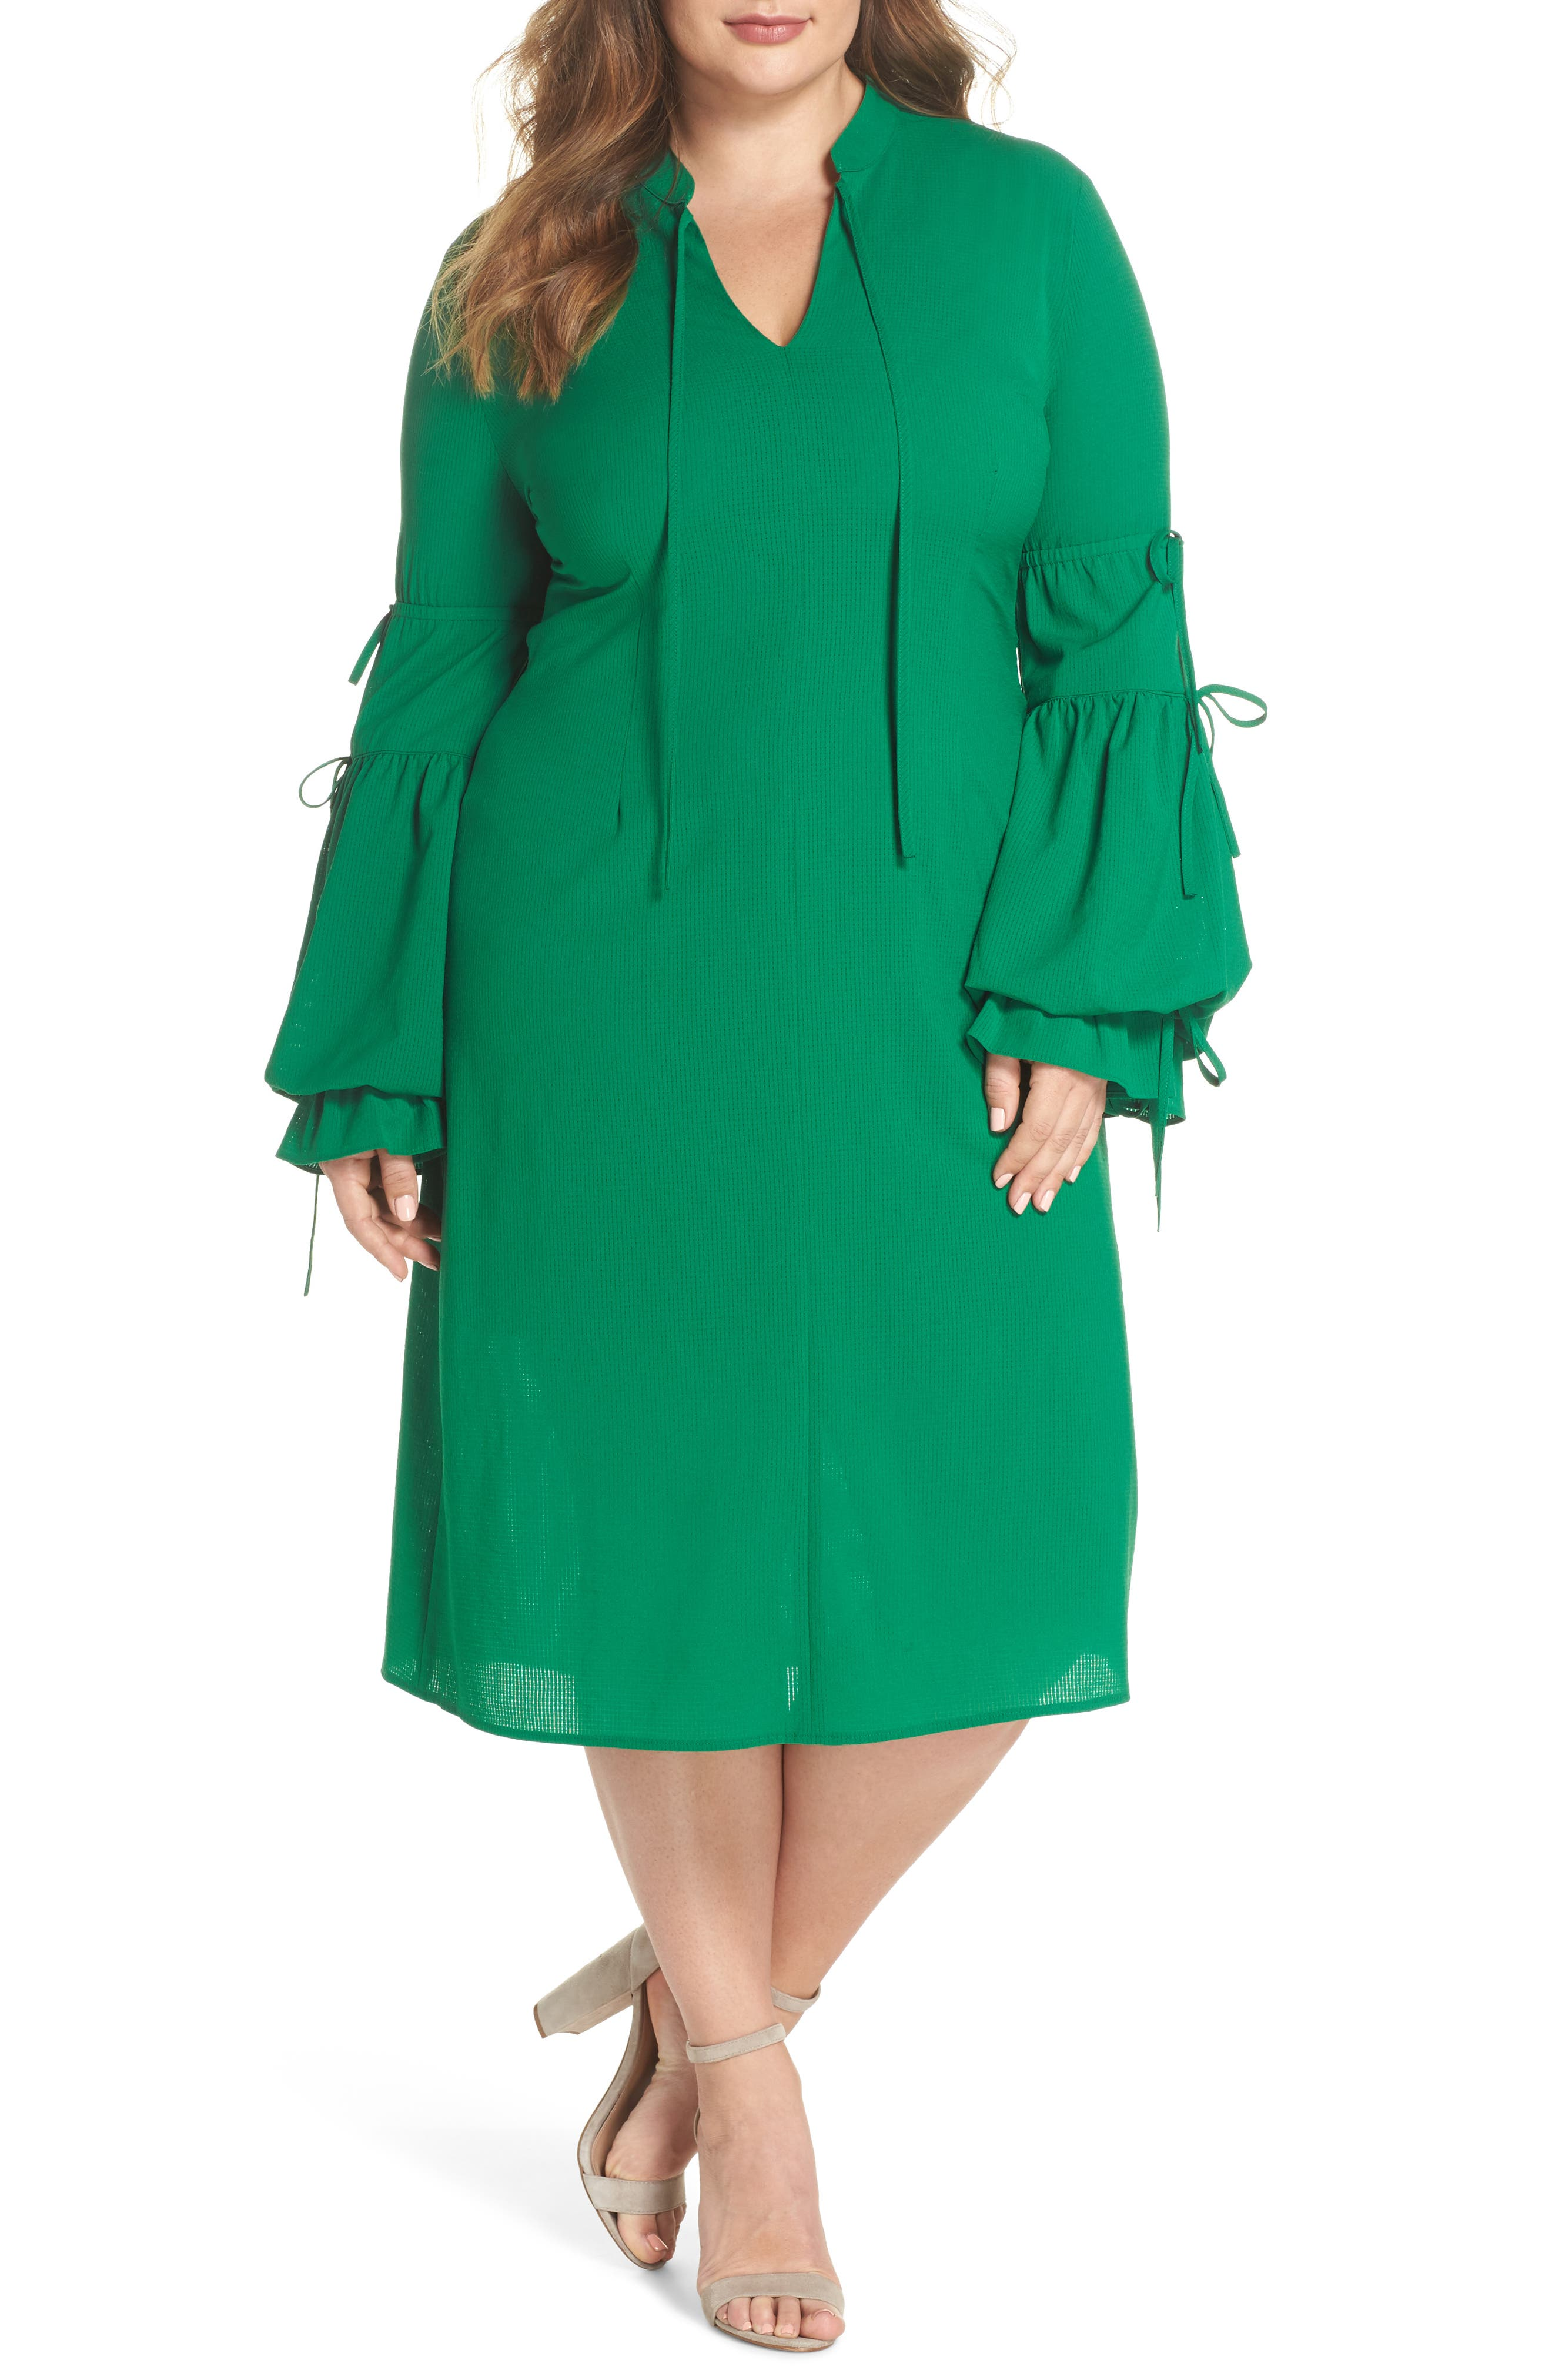 ELVI Leiko Antoinette Puff Sleeve Tea Dress (Plus Size)